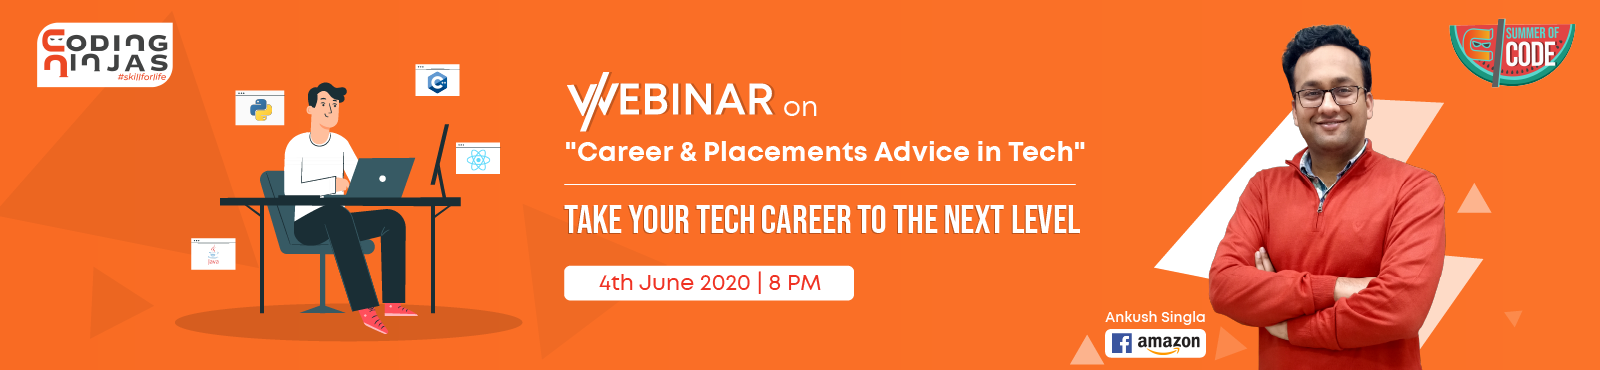 Webinar on Career & Placements Advice in Tech